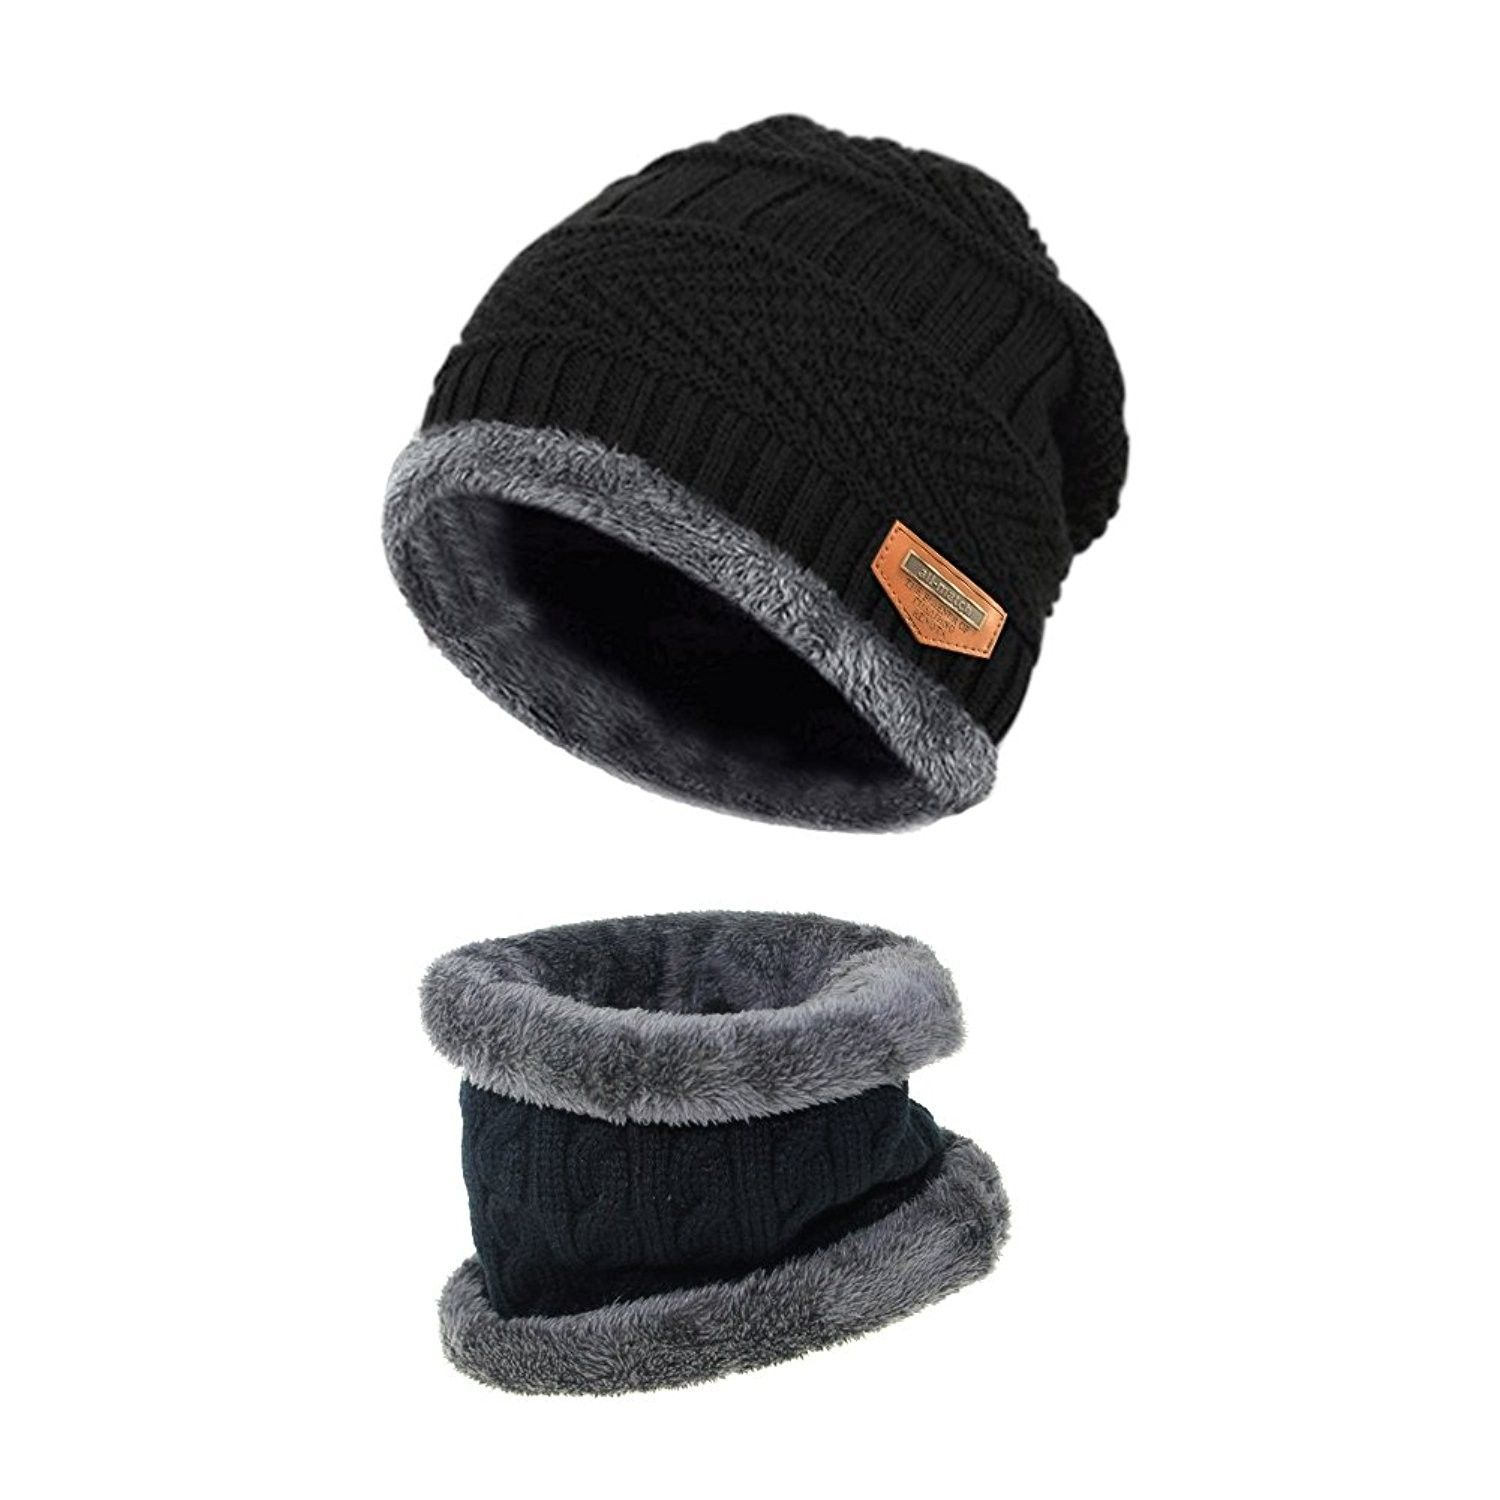 Beanie Hat Scarf Set Thick Knit Hat Warm Fleece Lined Scarf Winter ... 3aad9badf9e